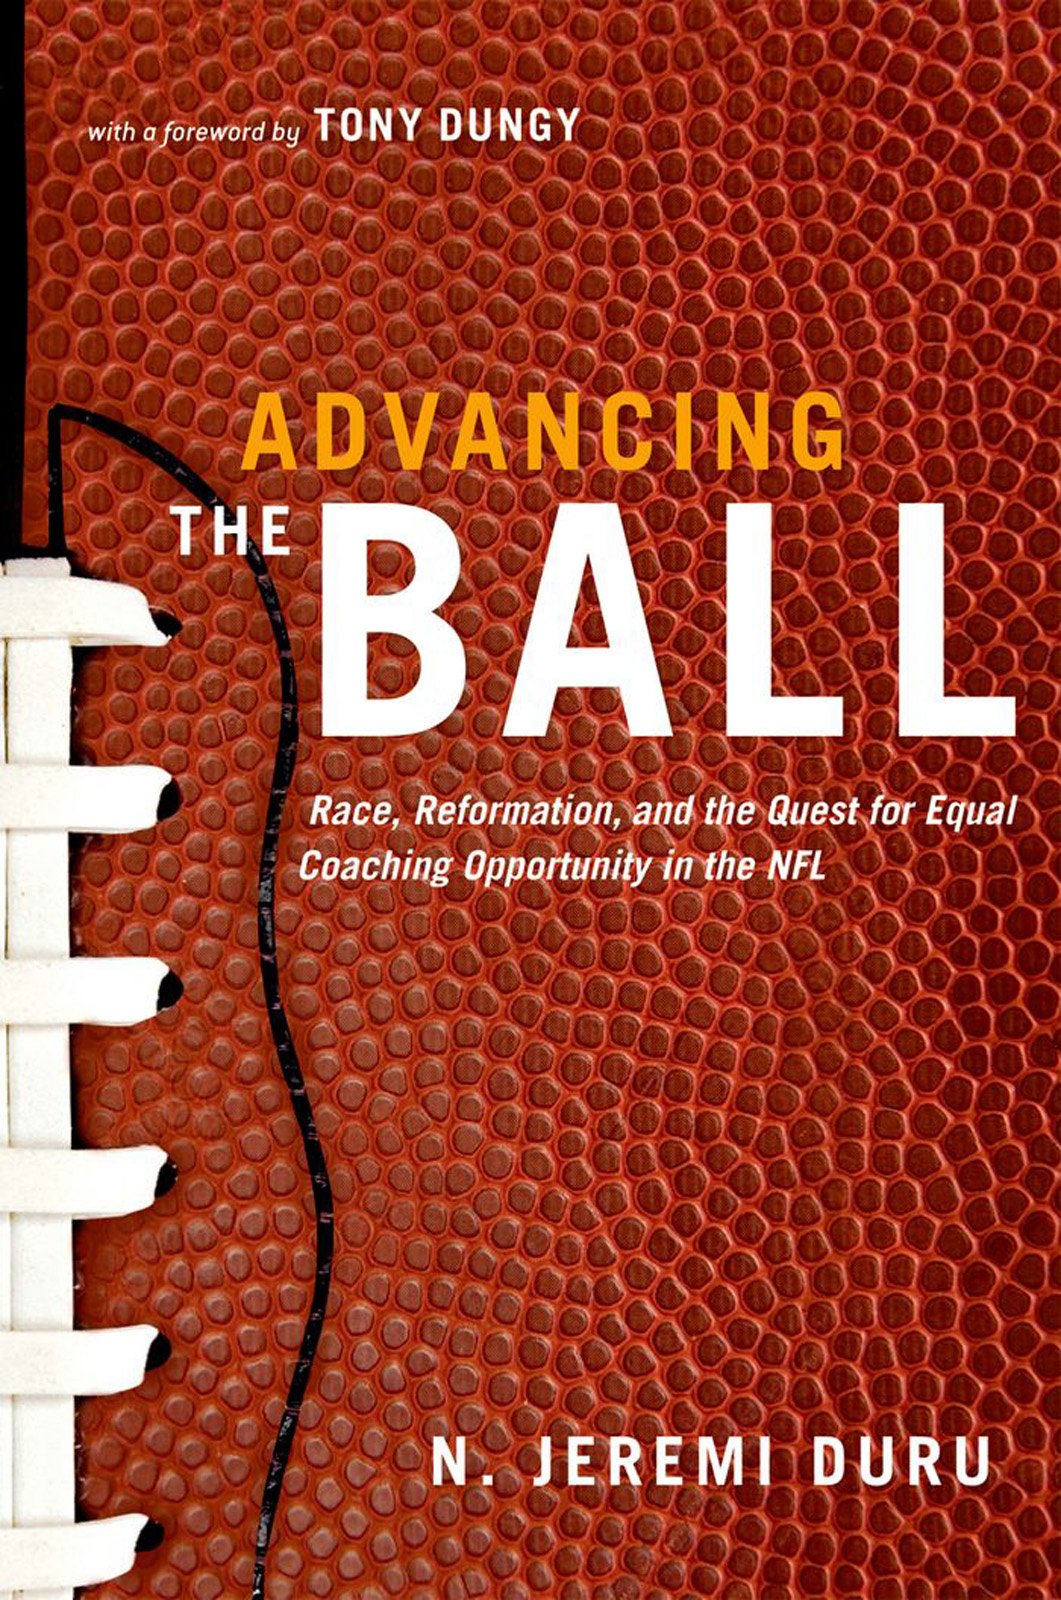 Advancing the Ball:Race, Reformation, and the Quest for Equal Coaching Opportunity in the NFL